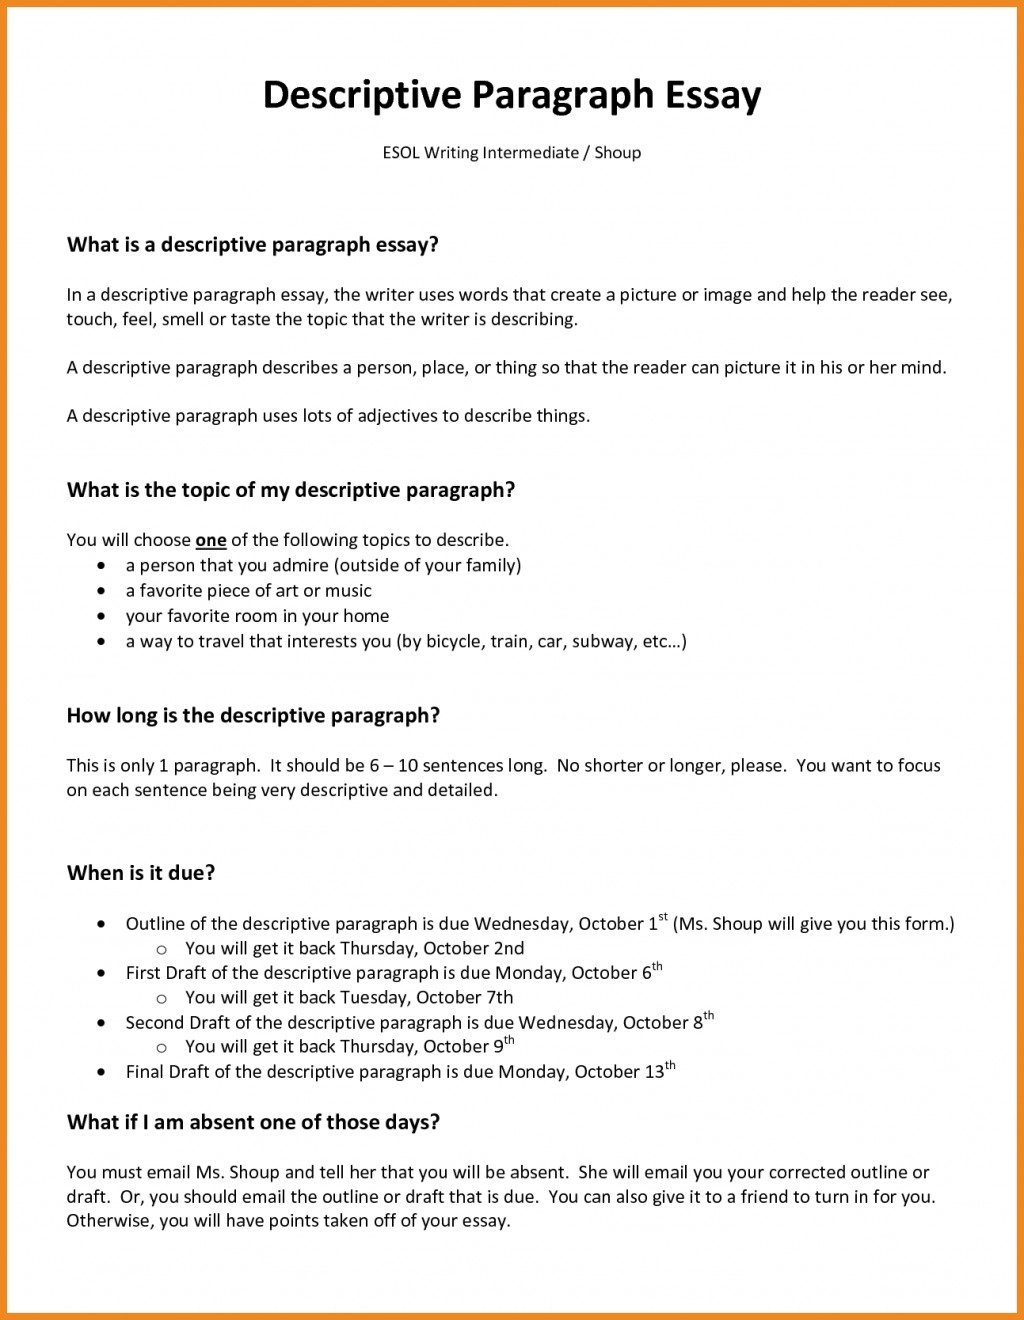 003 How To Write Descriptive Essay Example Of About Place L Awesome Writing A Paragraph Ppt Large